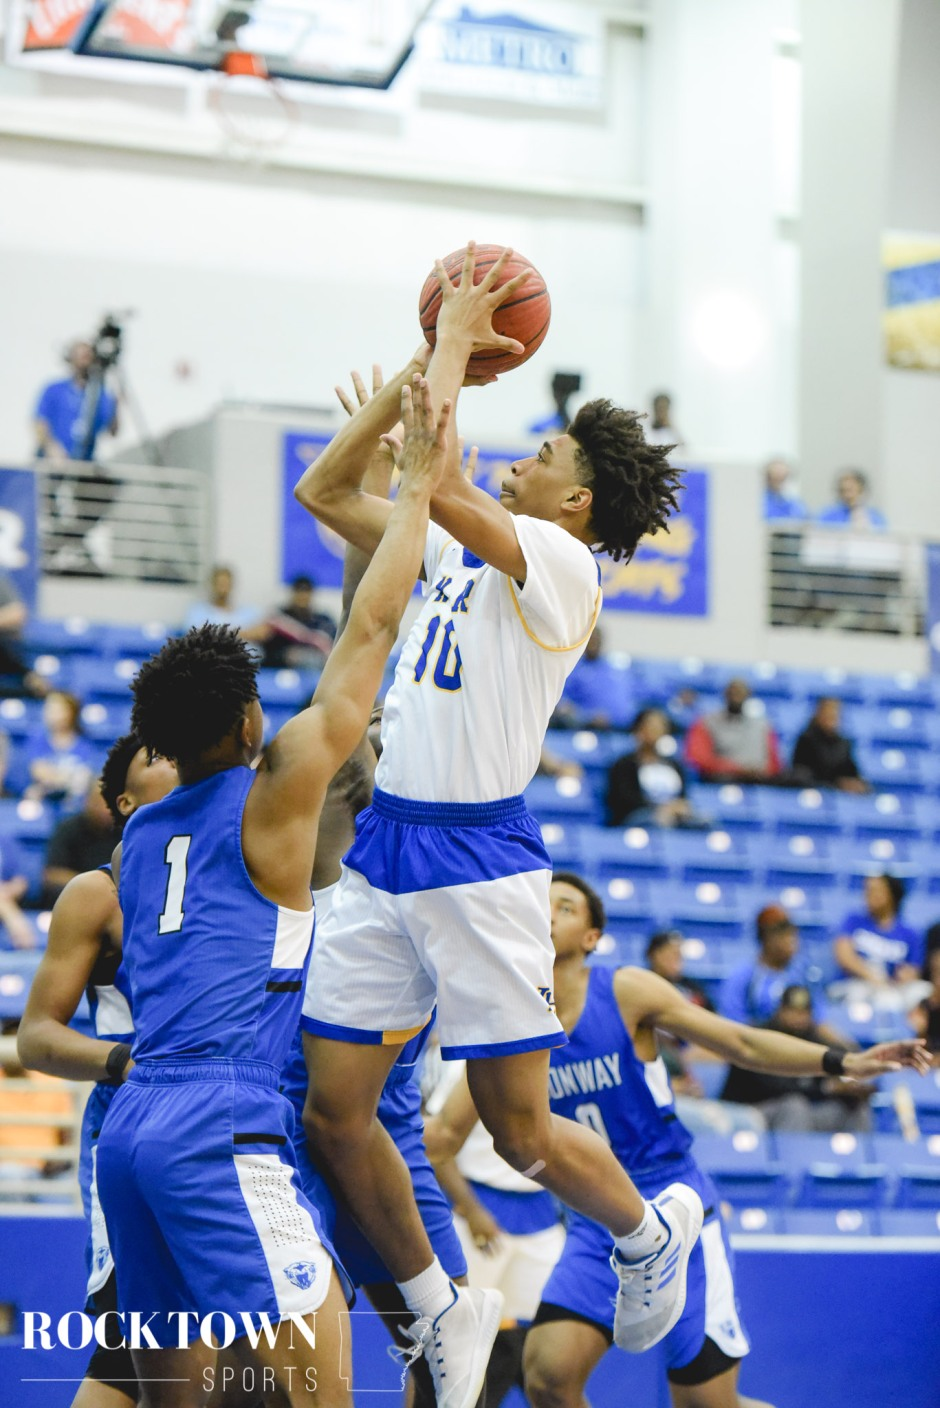 Conway_NLR_bball19(i)-44